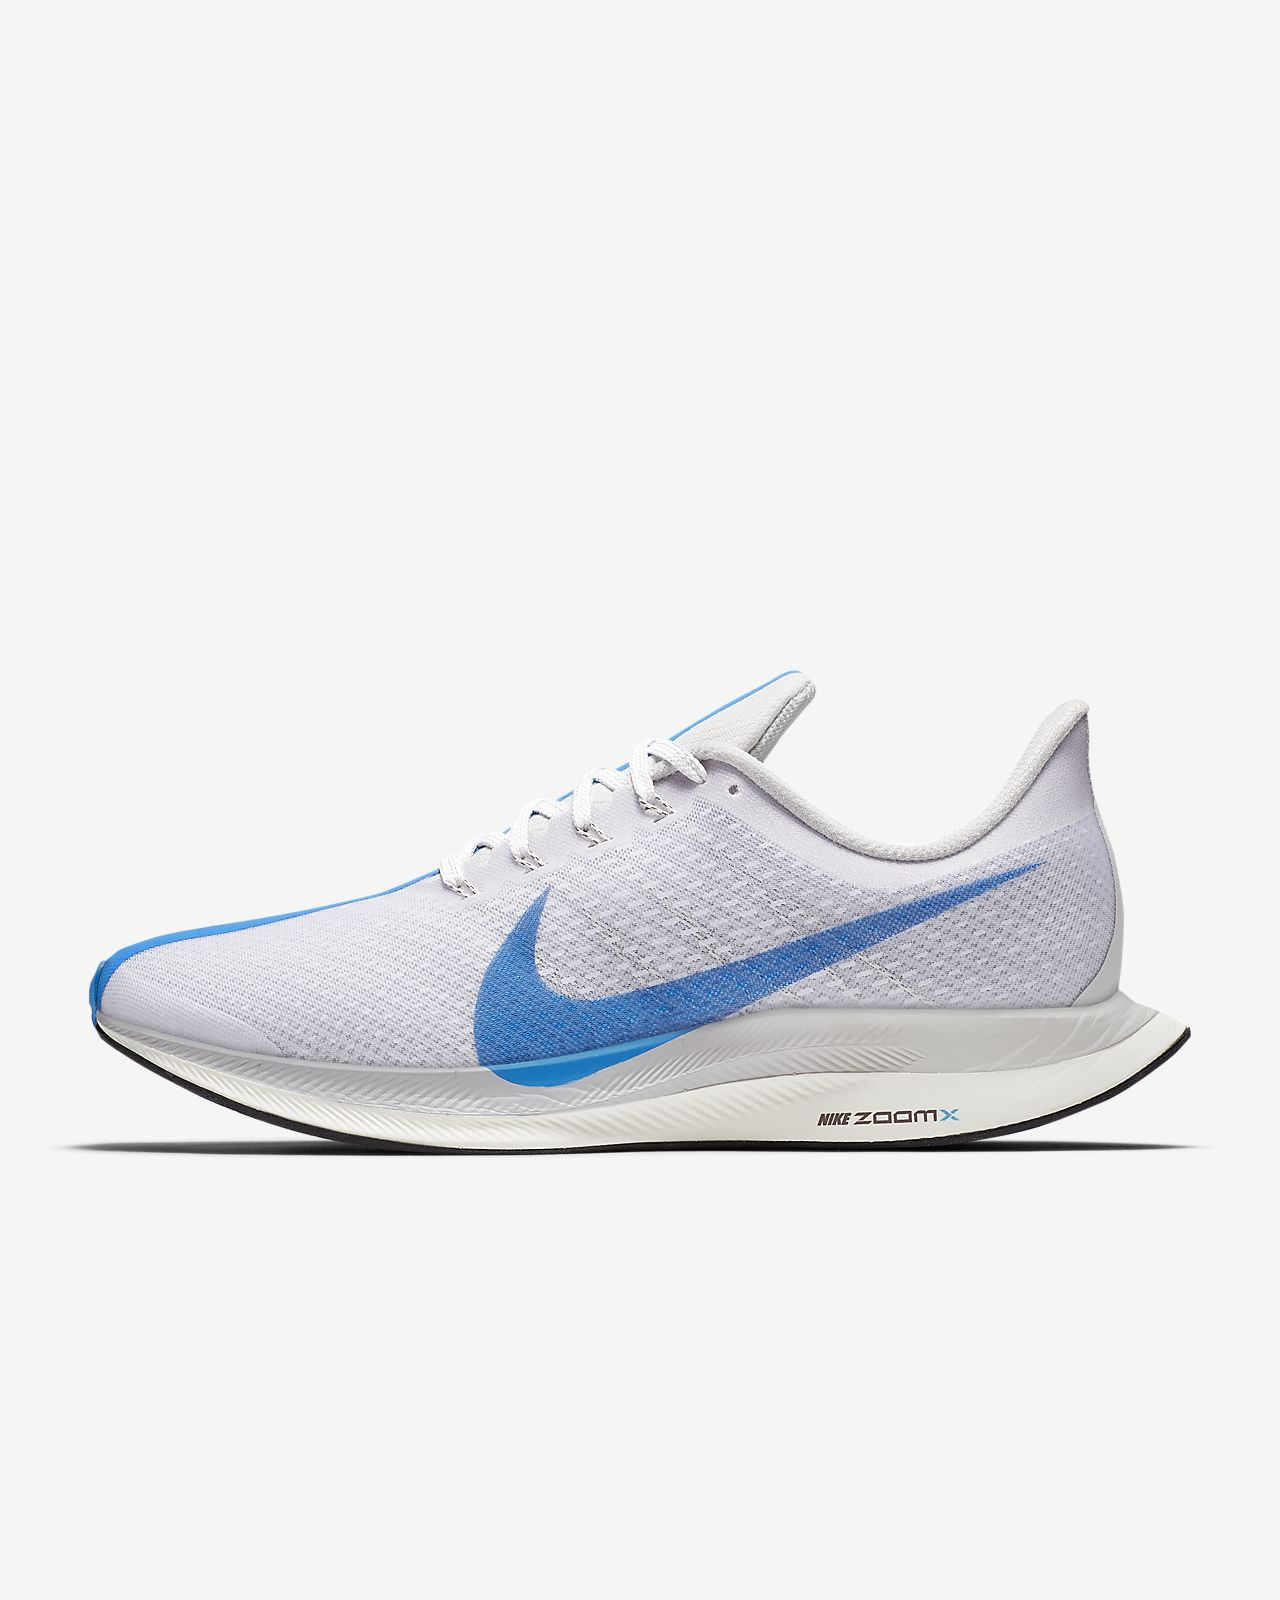 ... Nike Zoom Pegasus Turbo Men s Running Shoe. Low Resolution undefined 09a32a49001fb